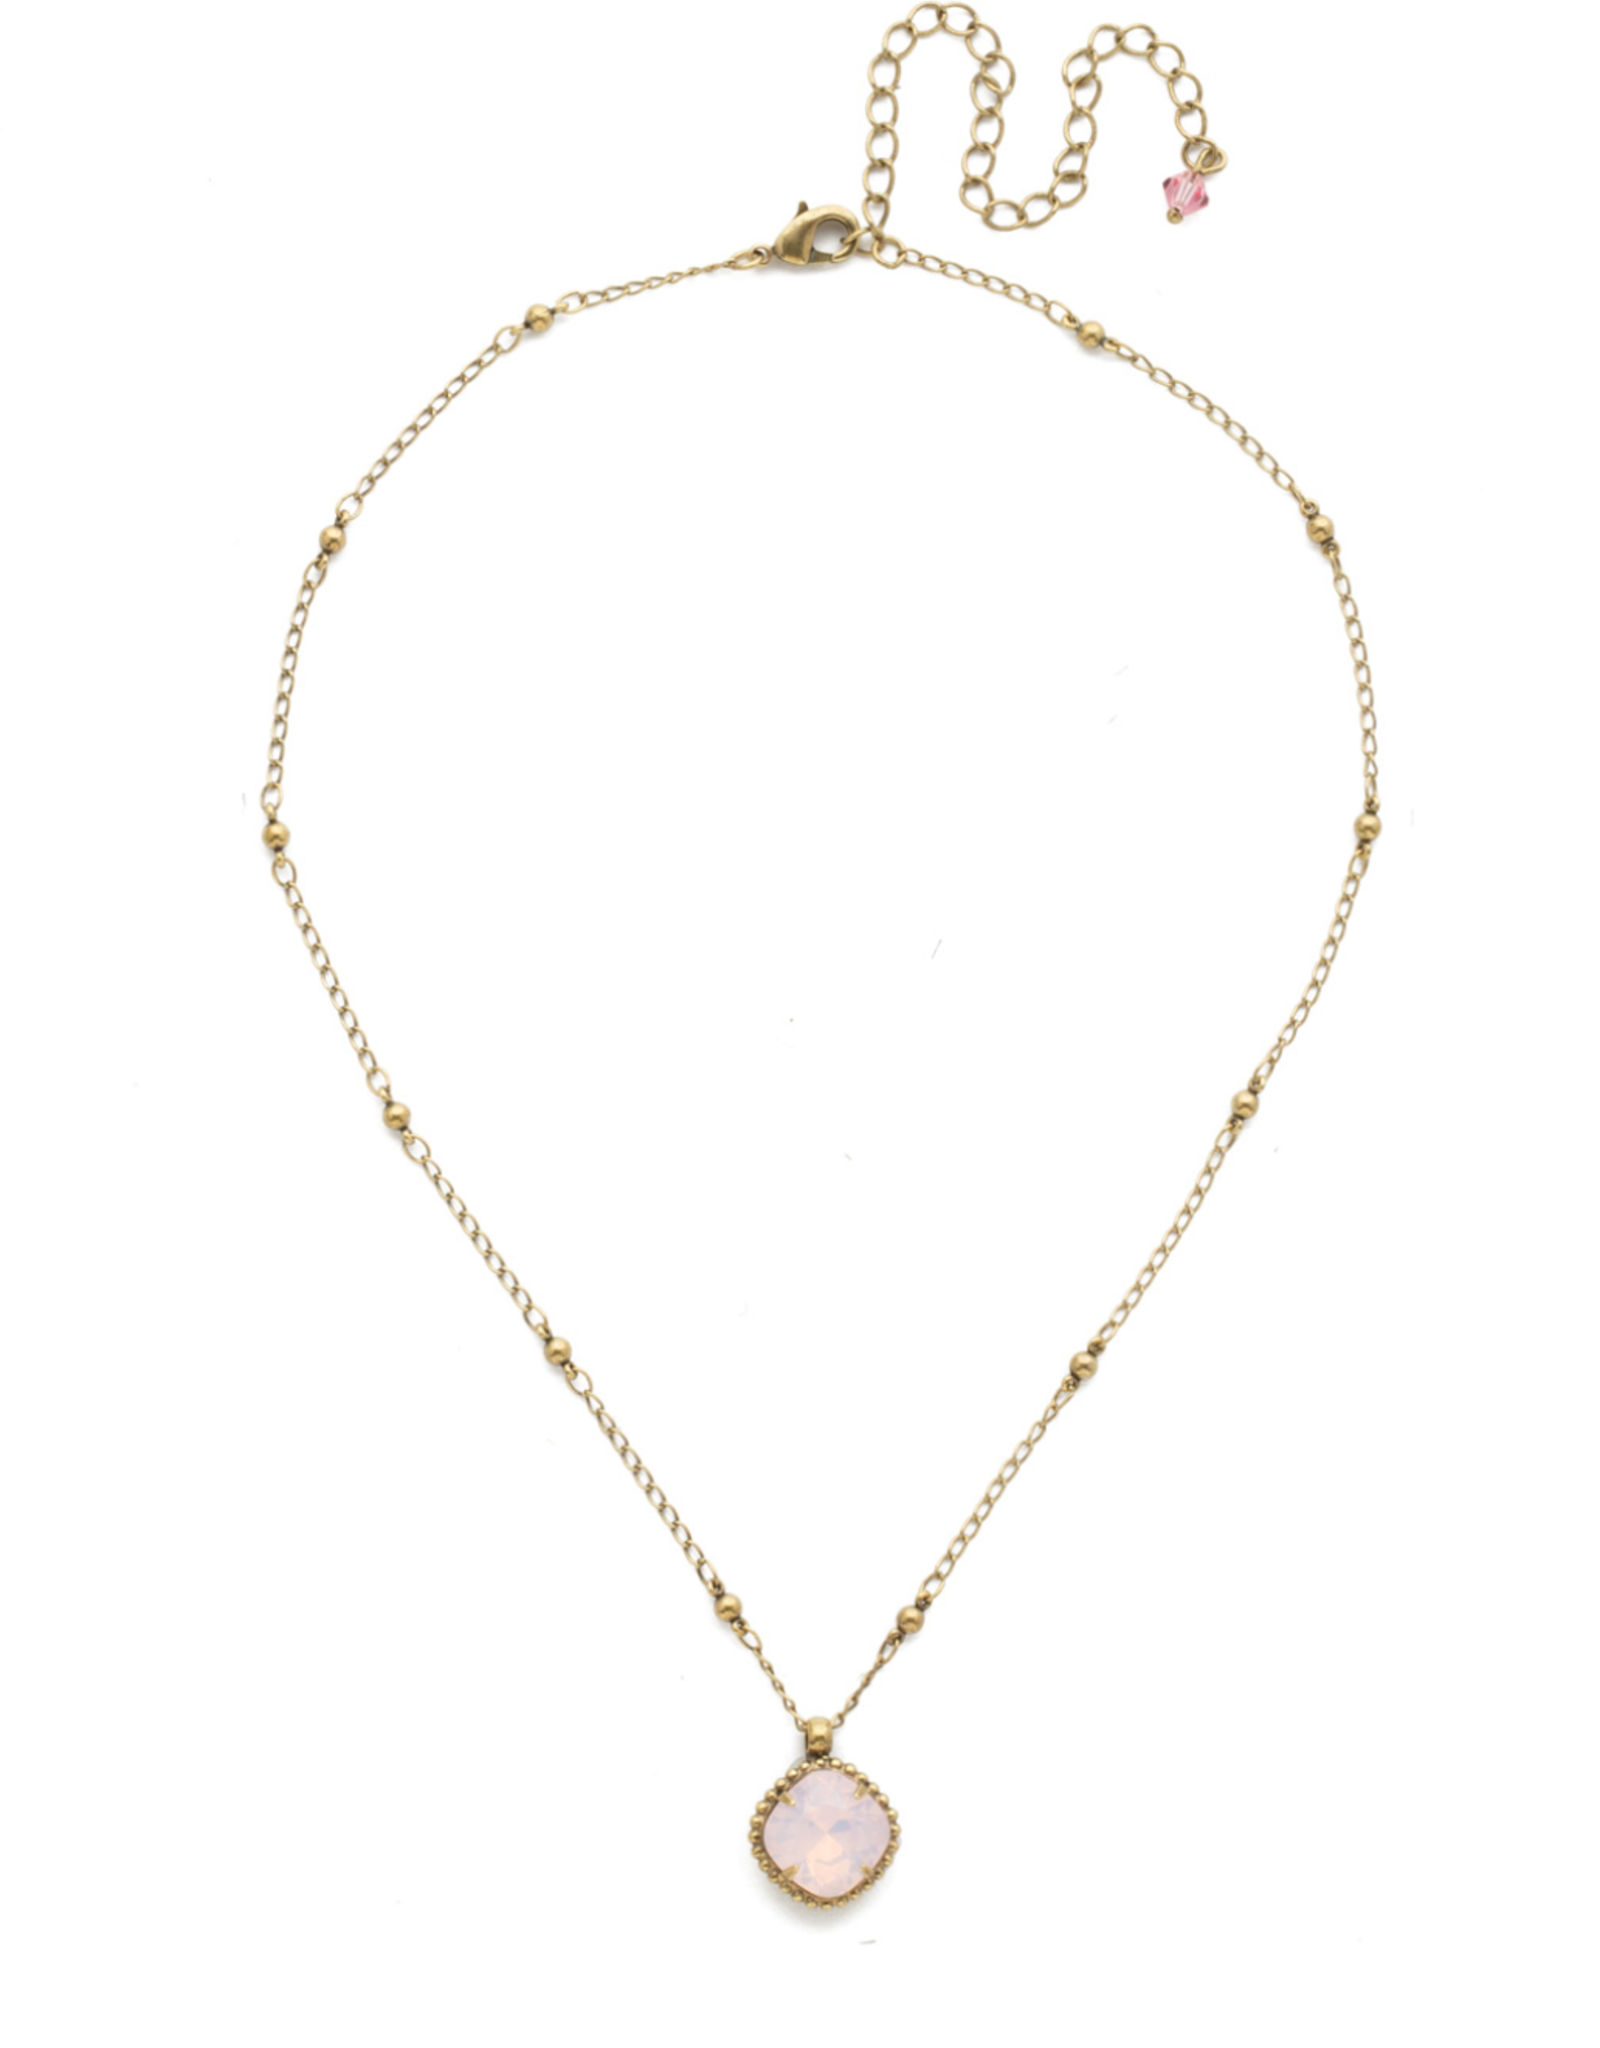 Cushion-Cut Solitaire Necklace in Antique Gold